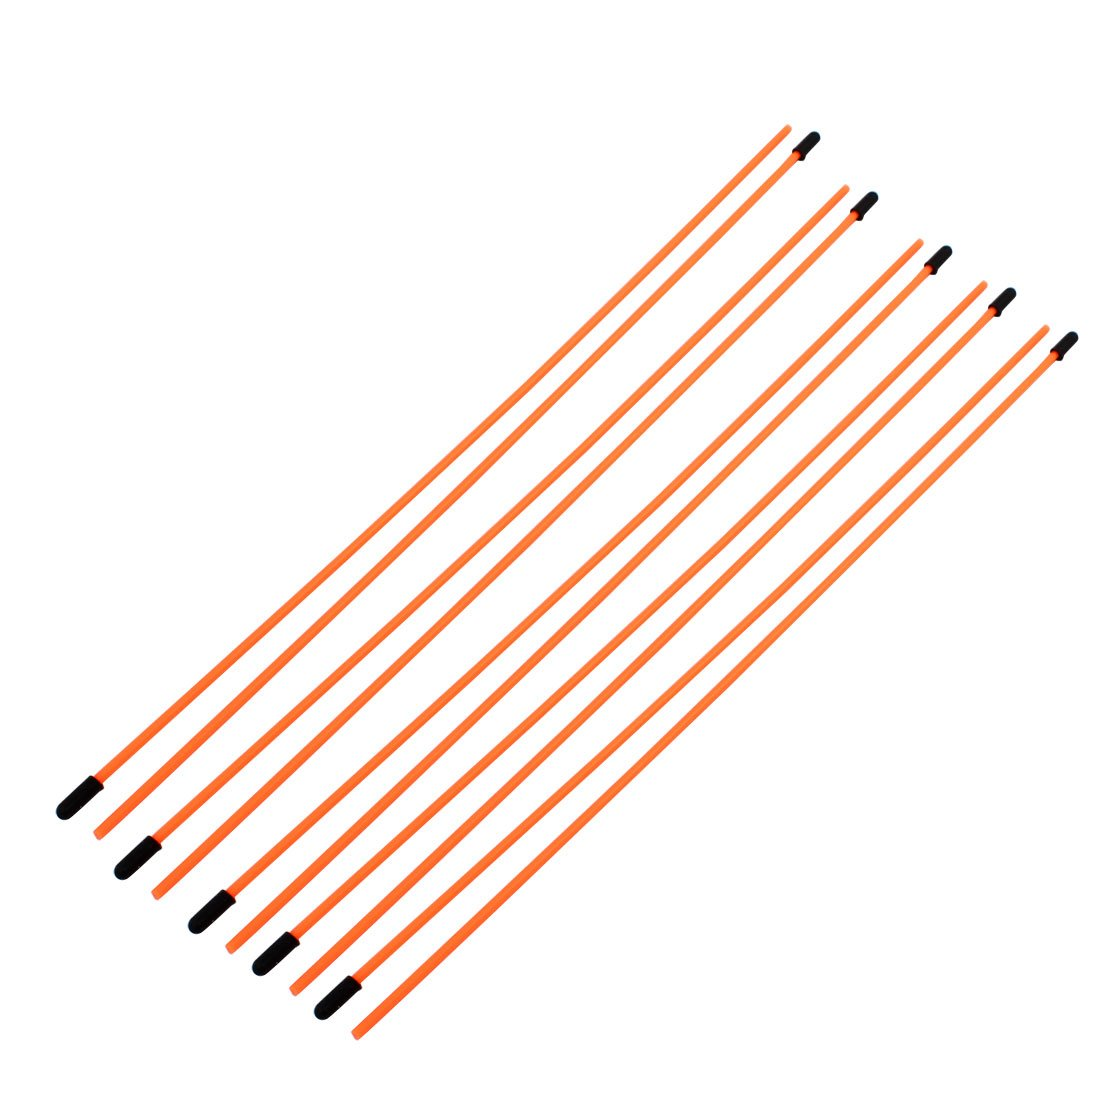 uxcell 10 Pcs 3mm x 1.5mm Orange Plastic Antenna Pipe Tube Protectors Receiver Aerial for RC Model Car